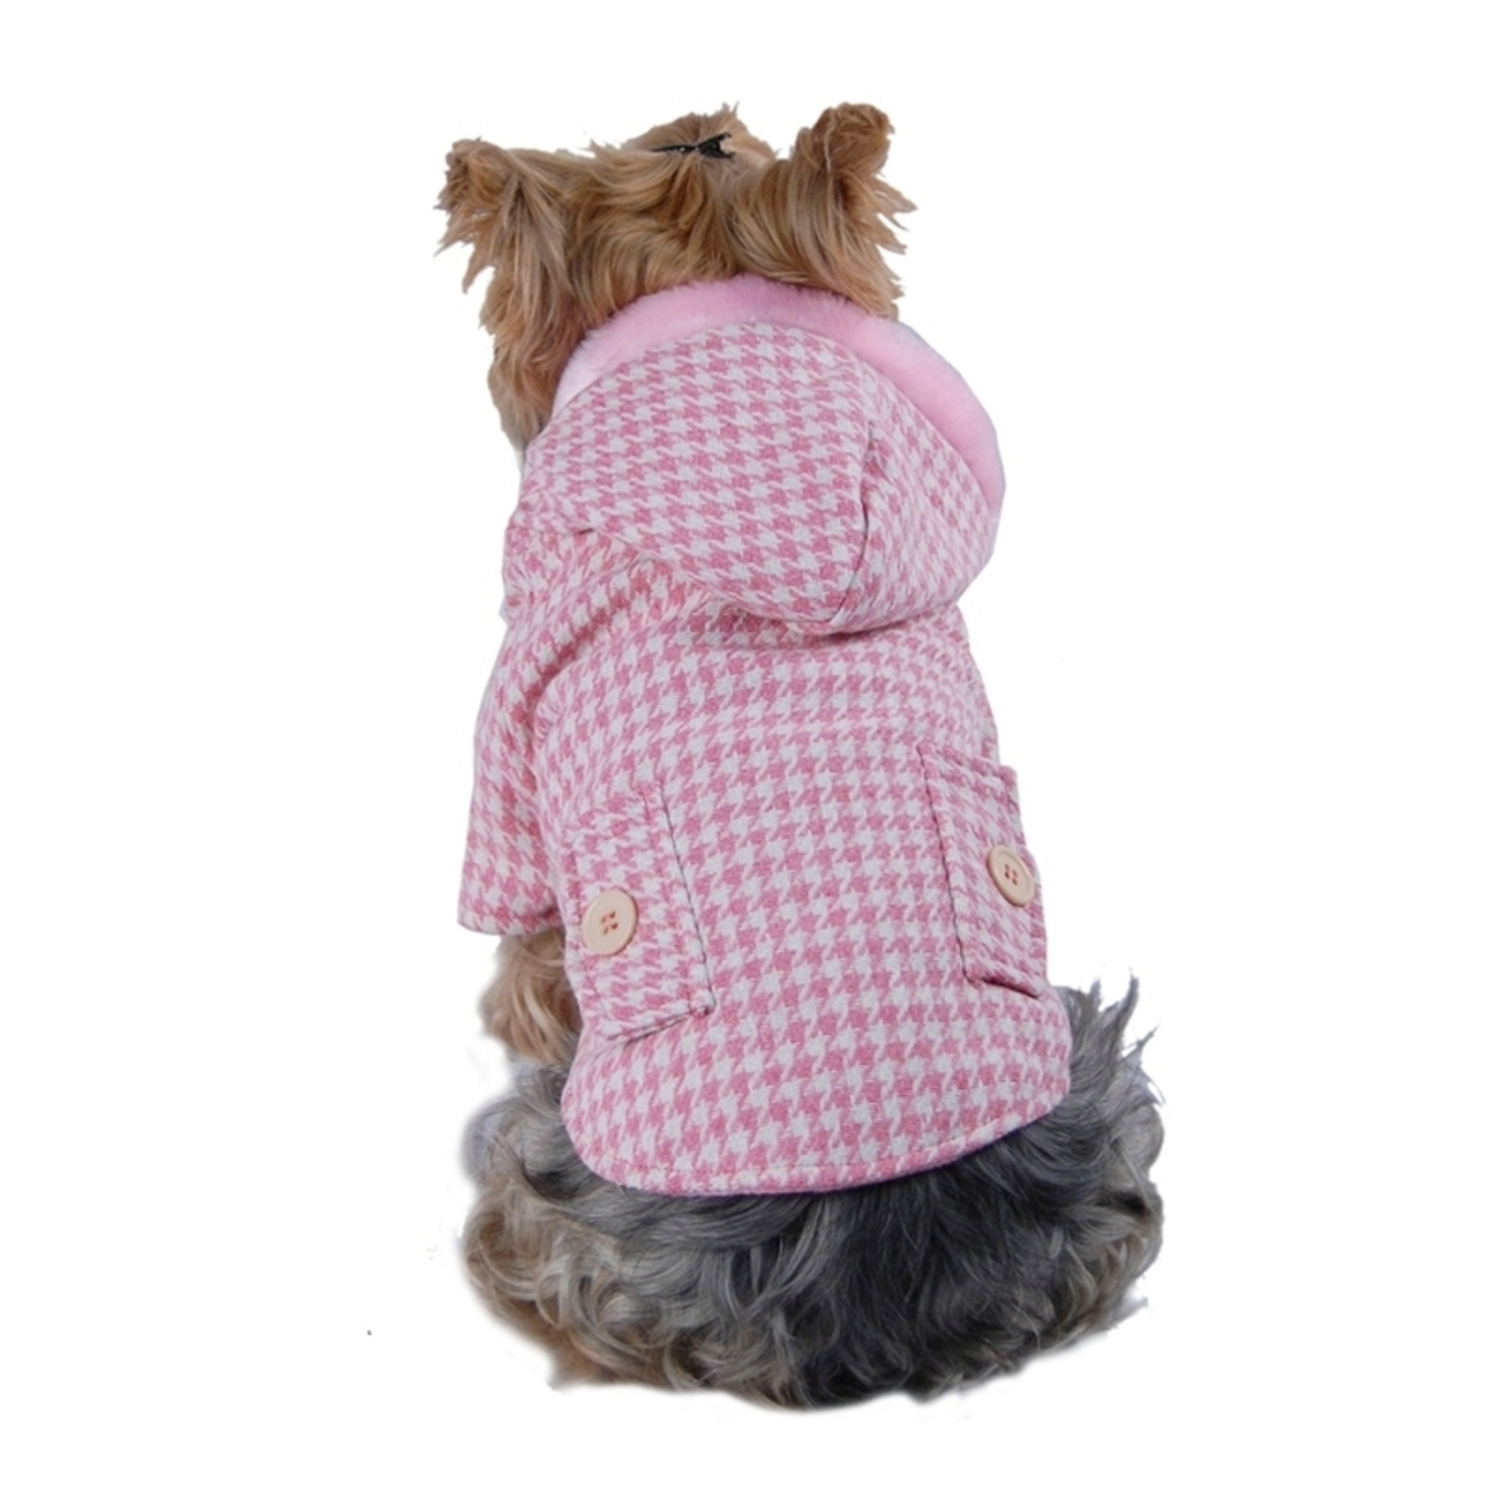 Pink Hundstooth Jacket For Puppy Dog - Small (Holiday Christmas Gift for Pet)